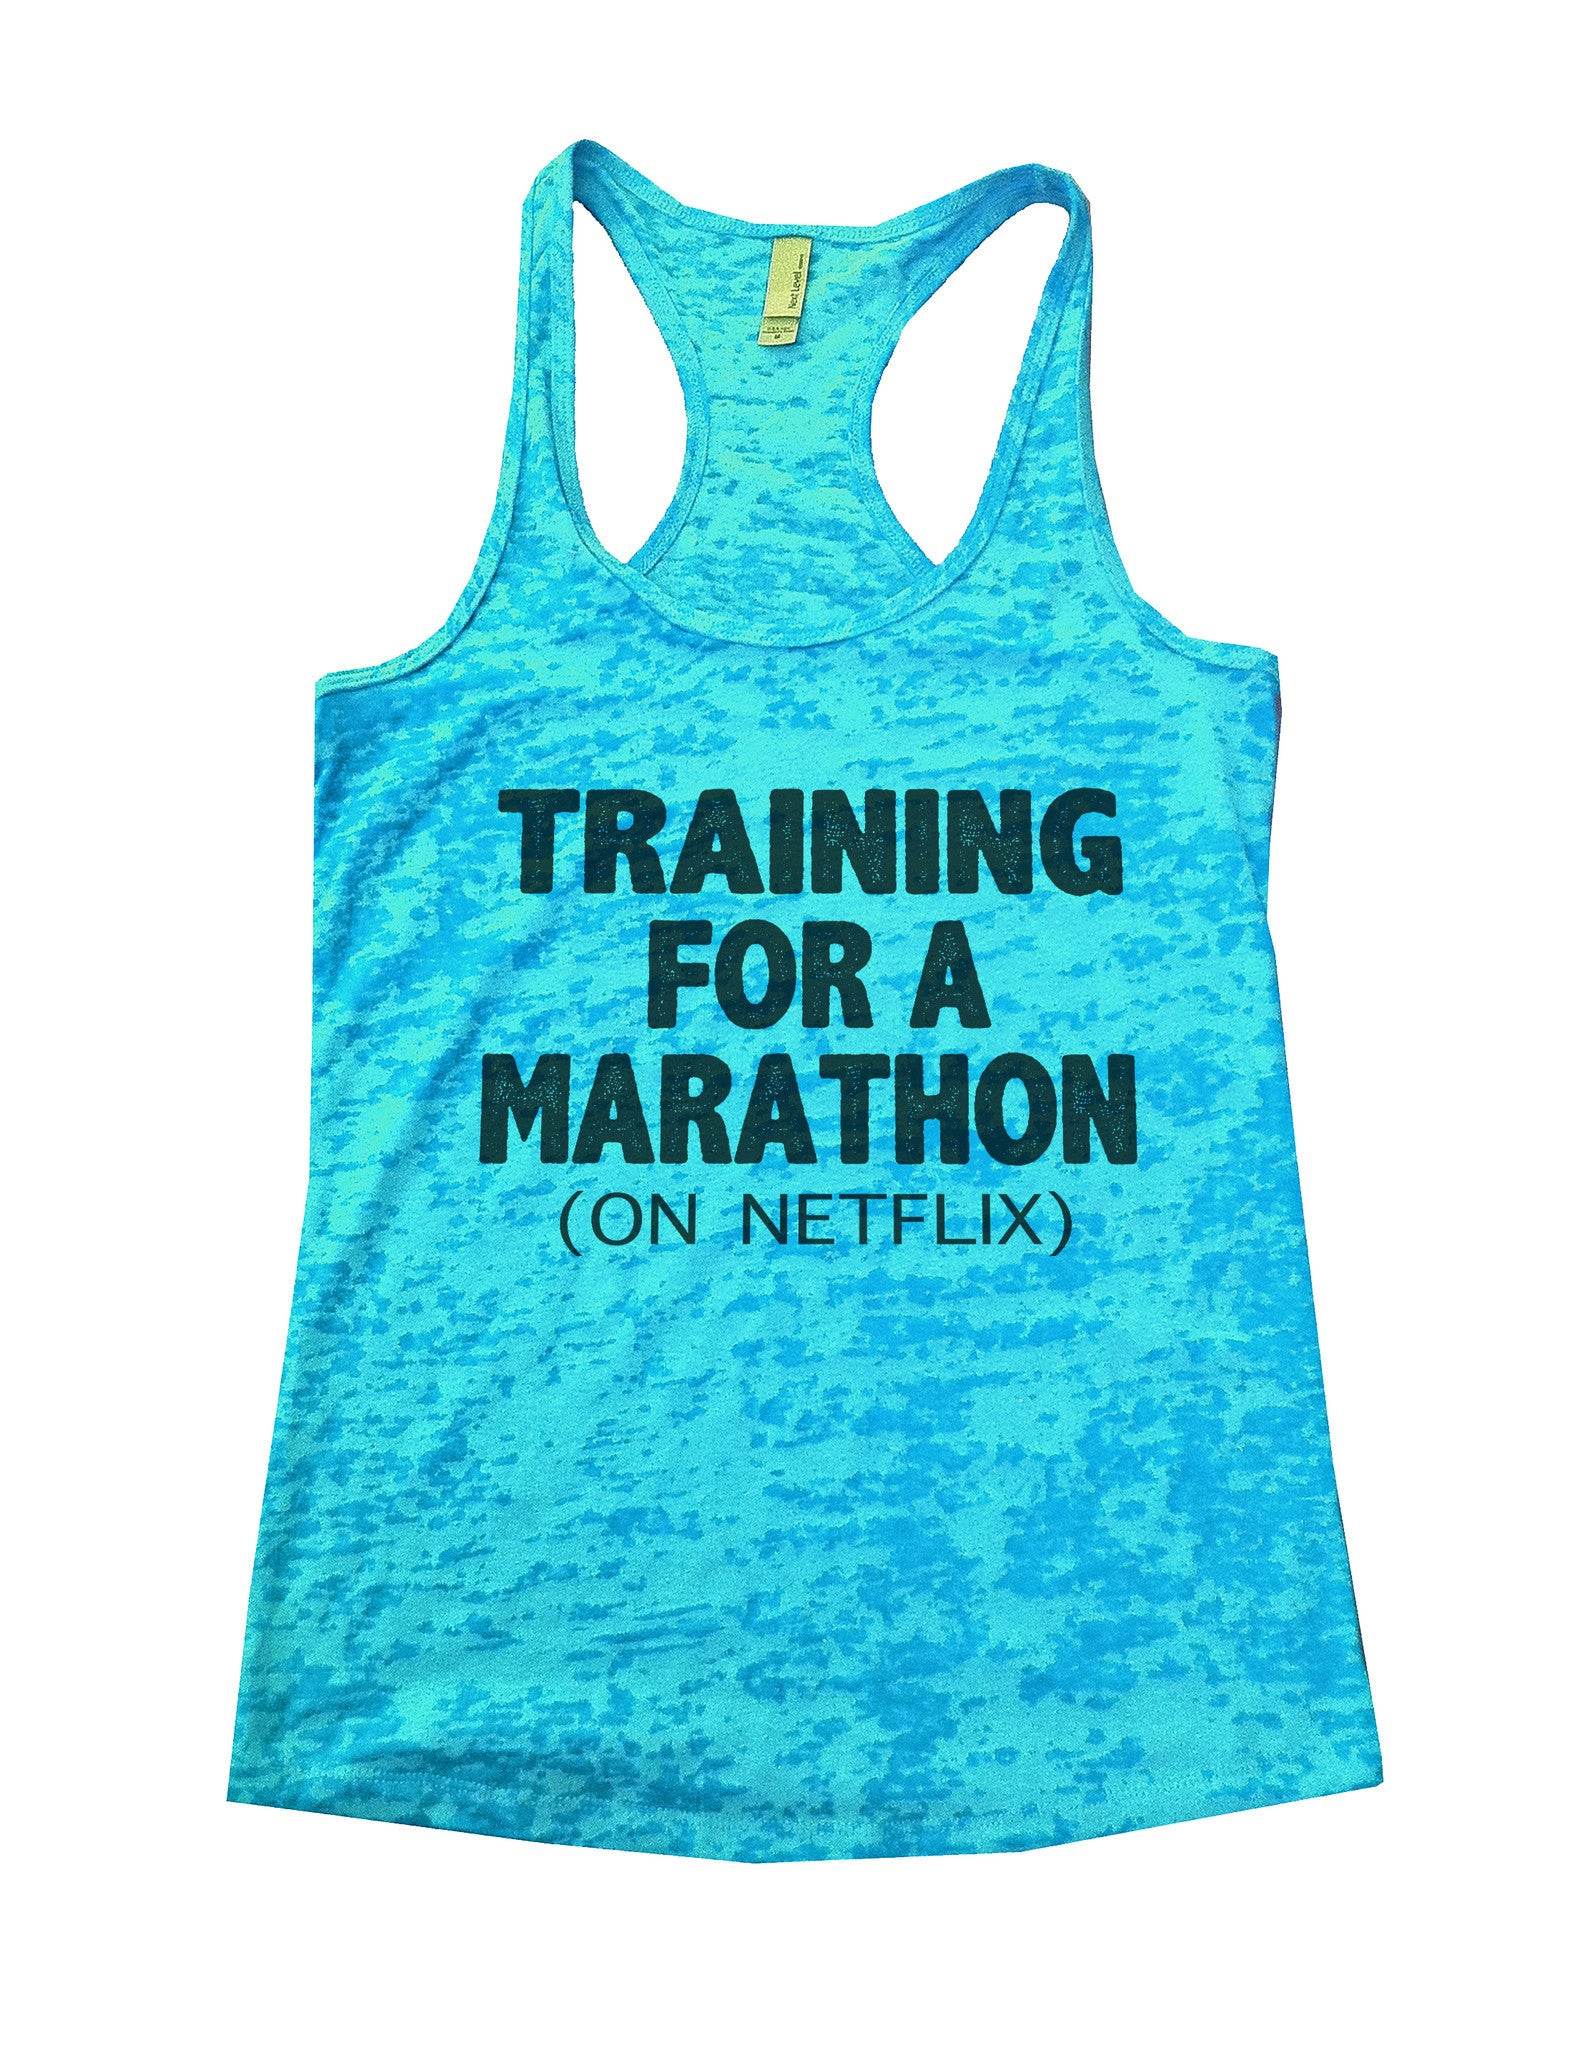 Training For A Marathon On Netflix Burnout Tank Top By BurnoutTankTops.com - 741 - Funny Shirts Tank Tops Burnouts and Triblends  - 4